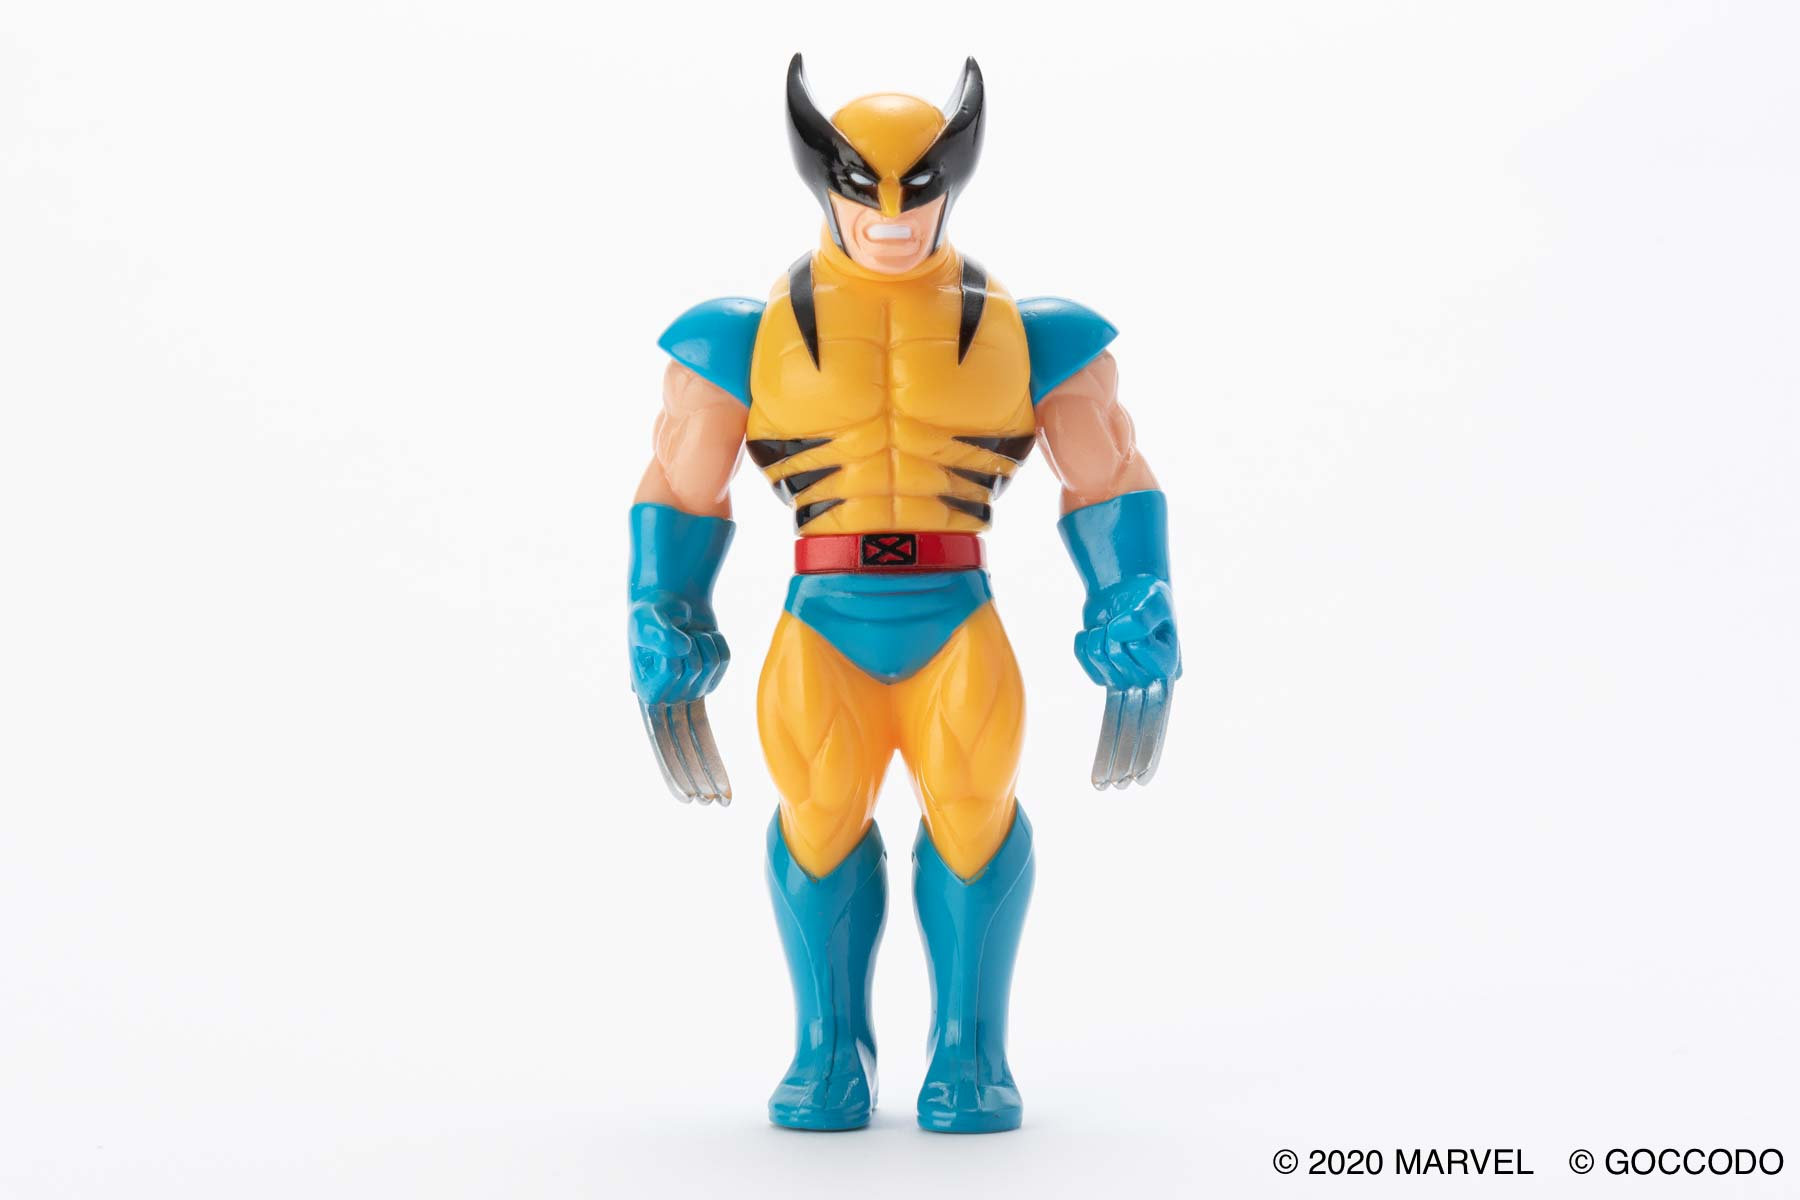 HKDSTOY×ゴッコ堂 -MARVEL [WOLVERINE] YELLOW/BLUE